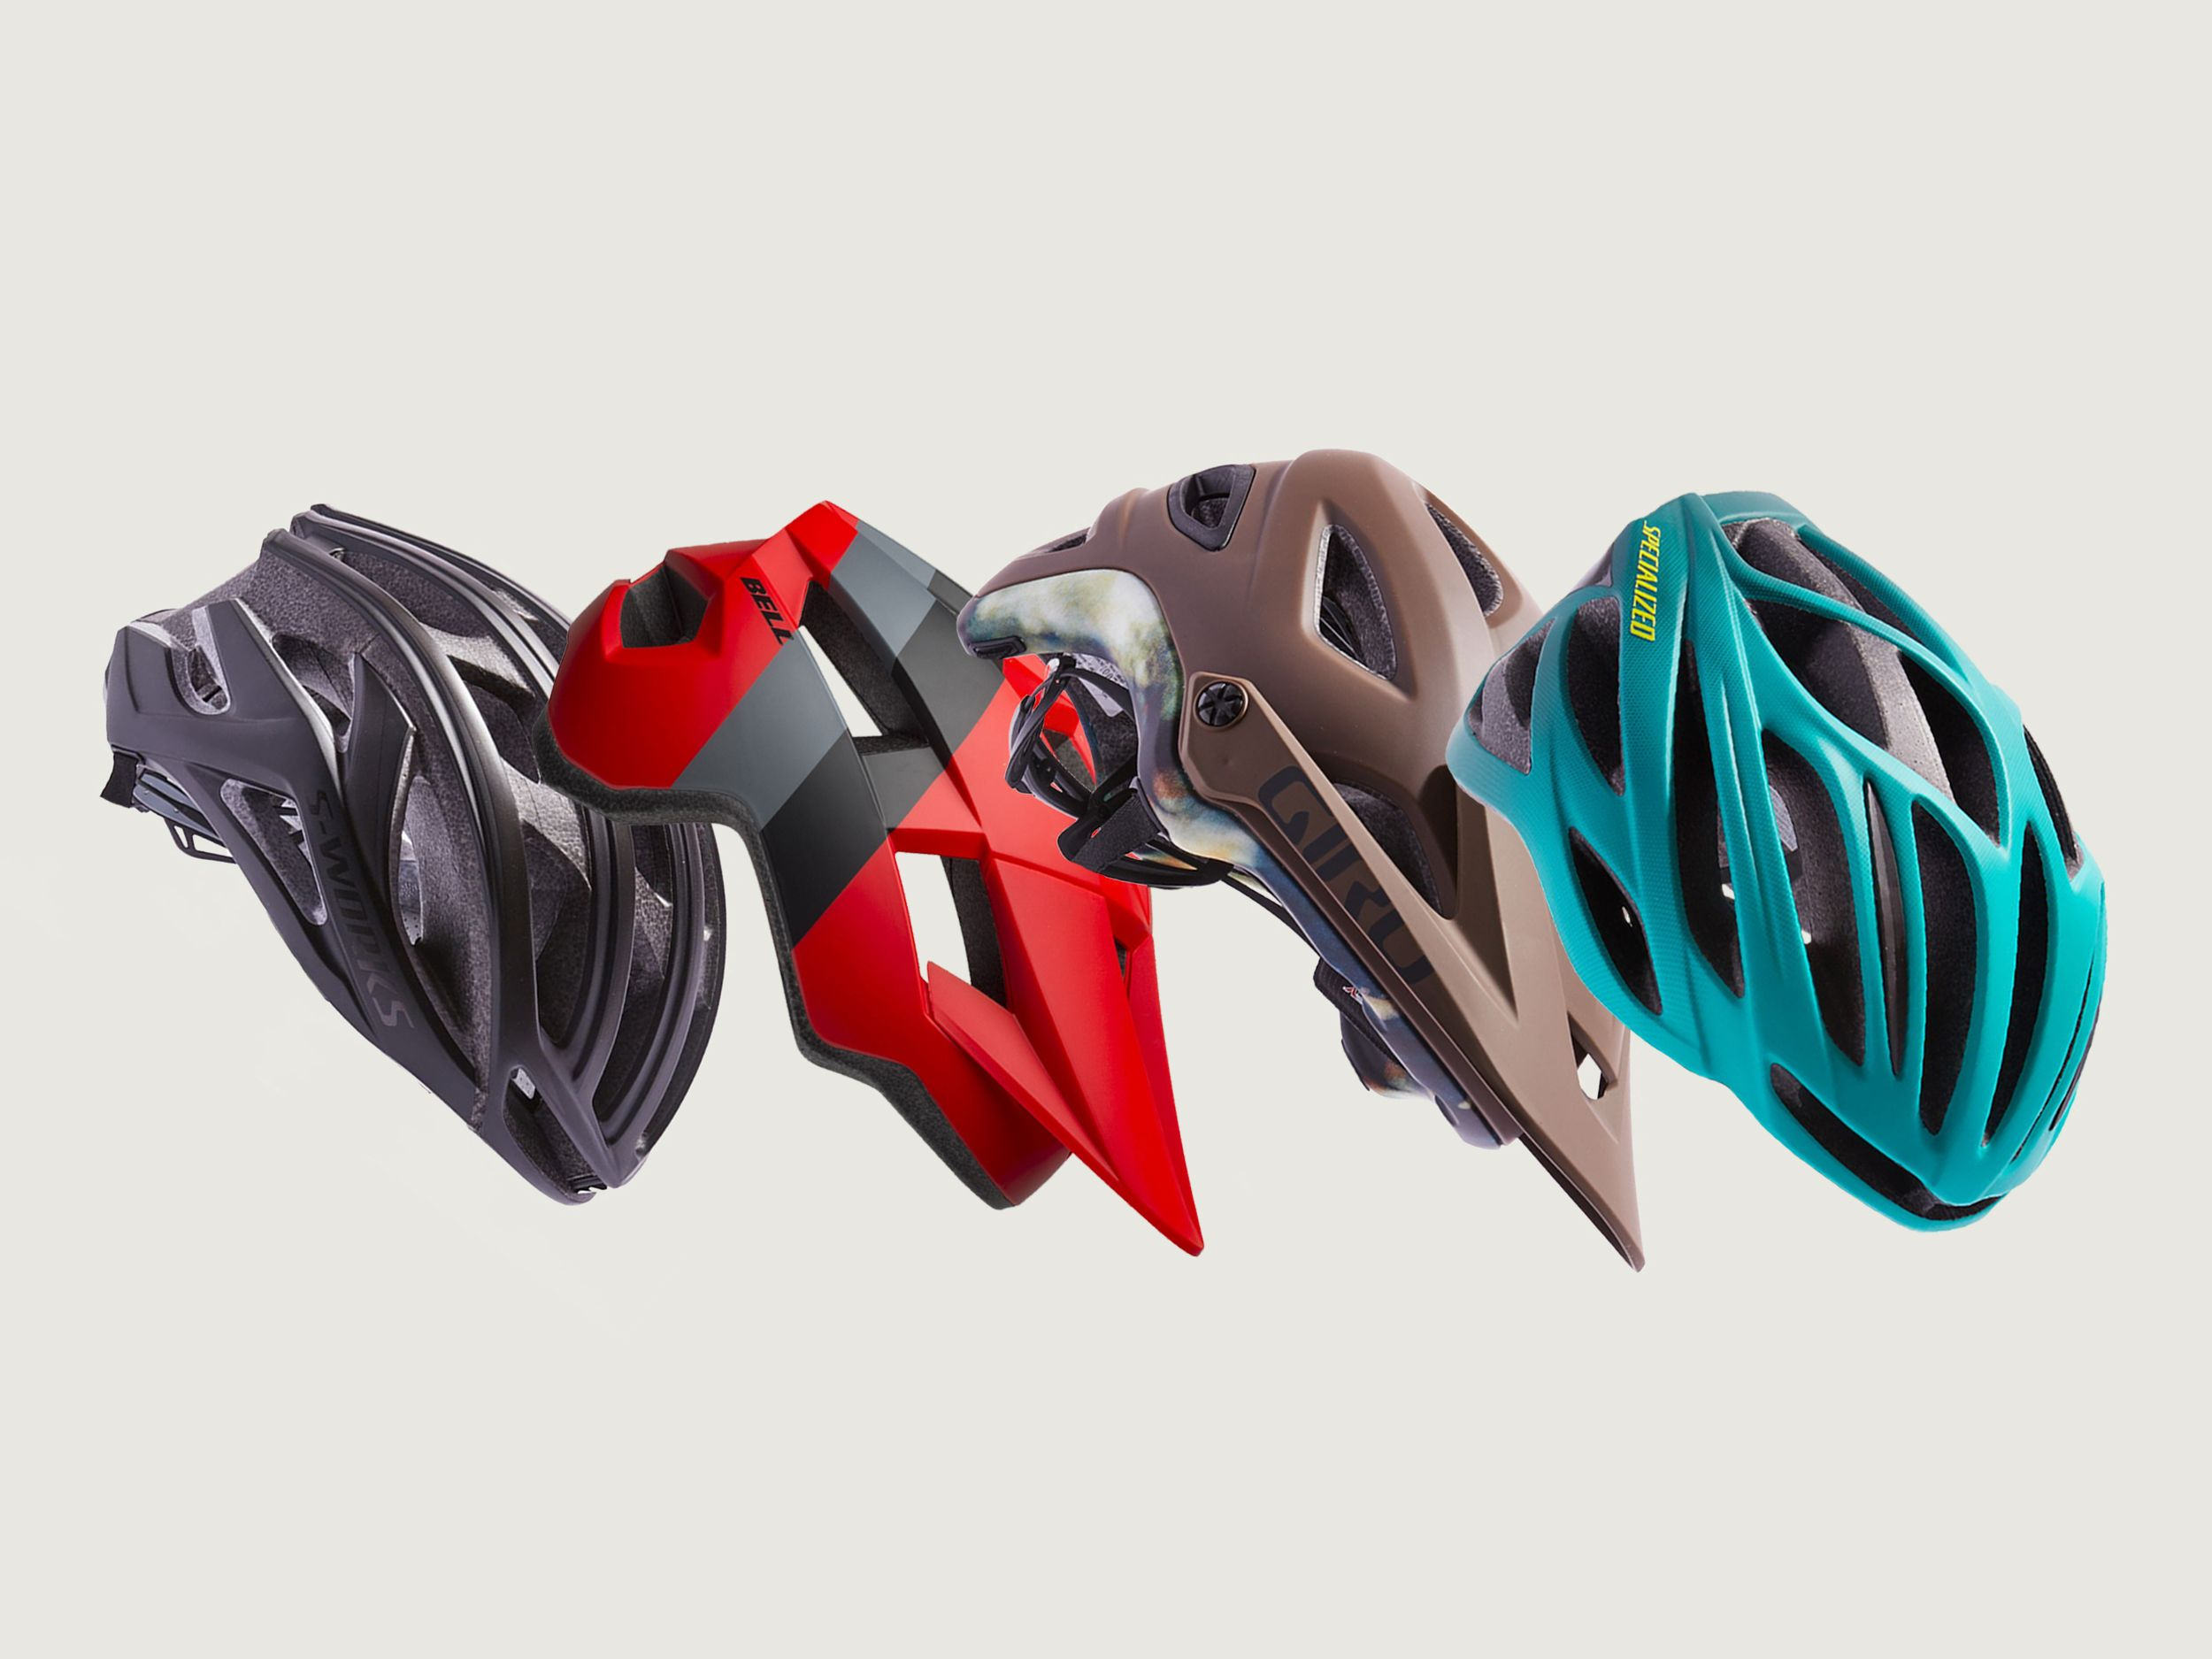 a0363c03cb0 The Best Road and Mountain Helmets You Can Buy Right Now